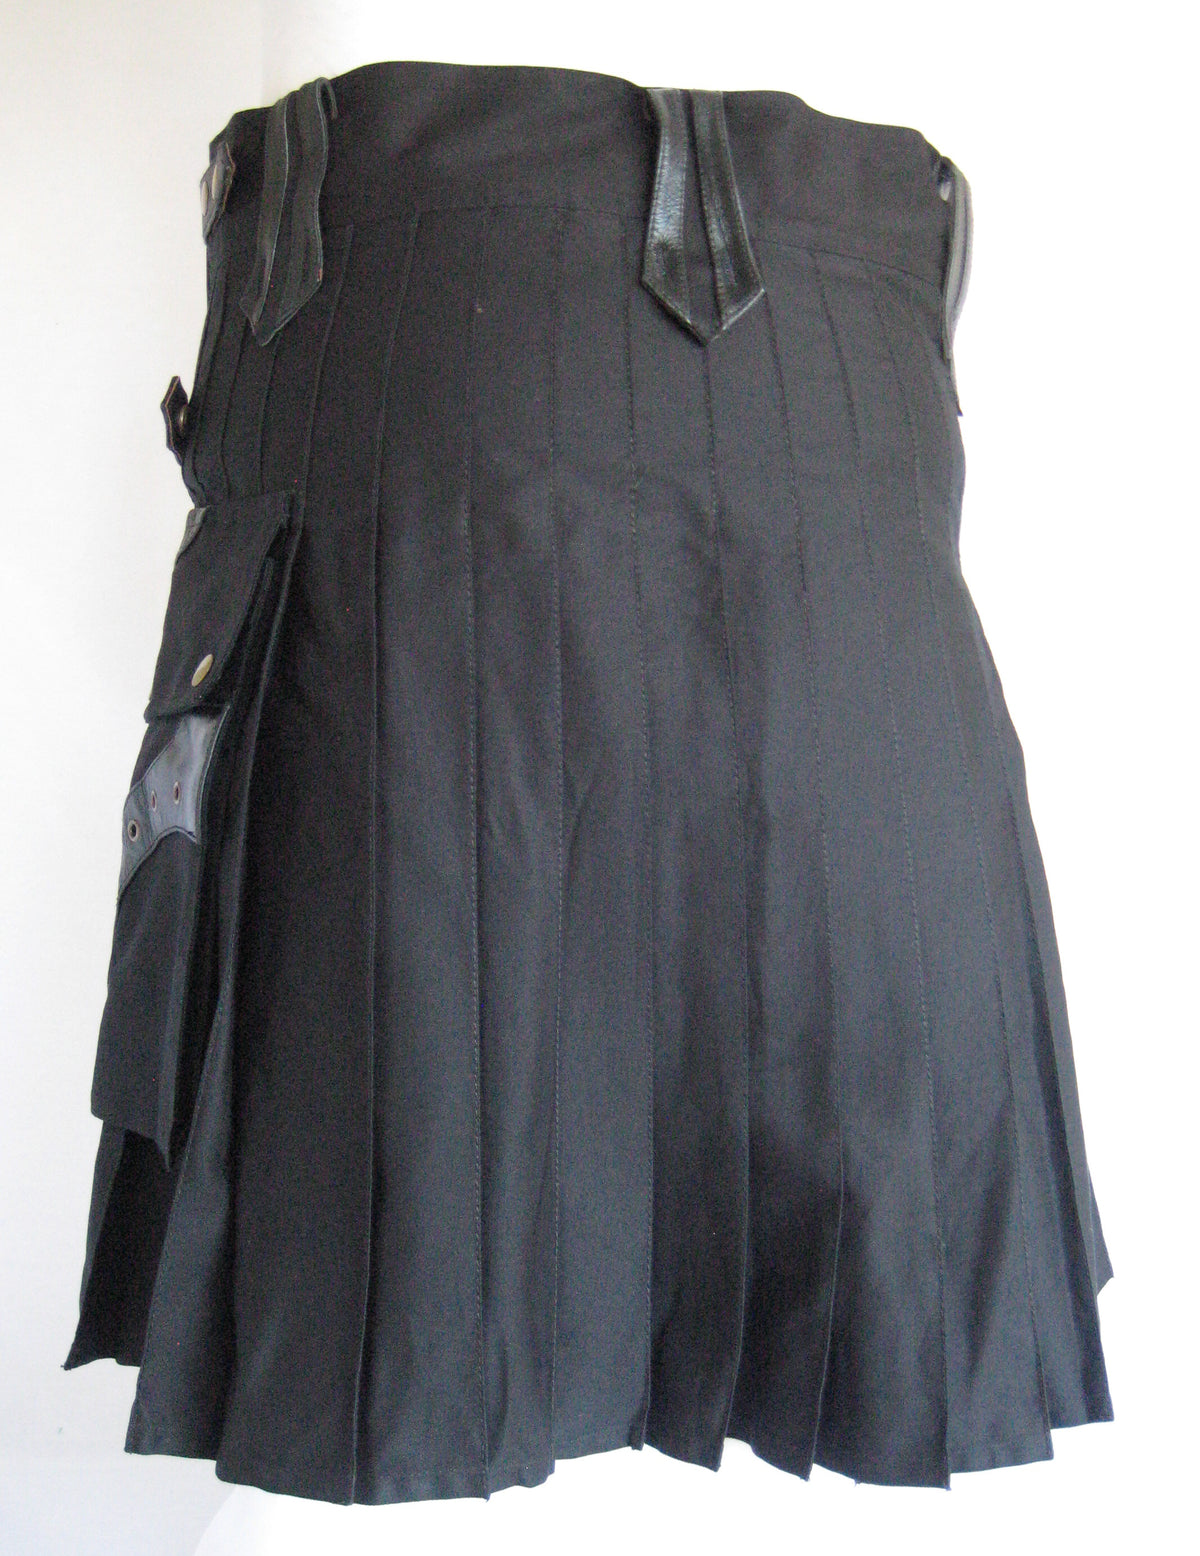 Men's Steampunk Black Kilt with Black Leather Accents